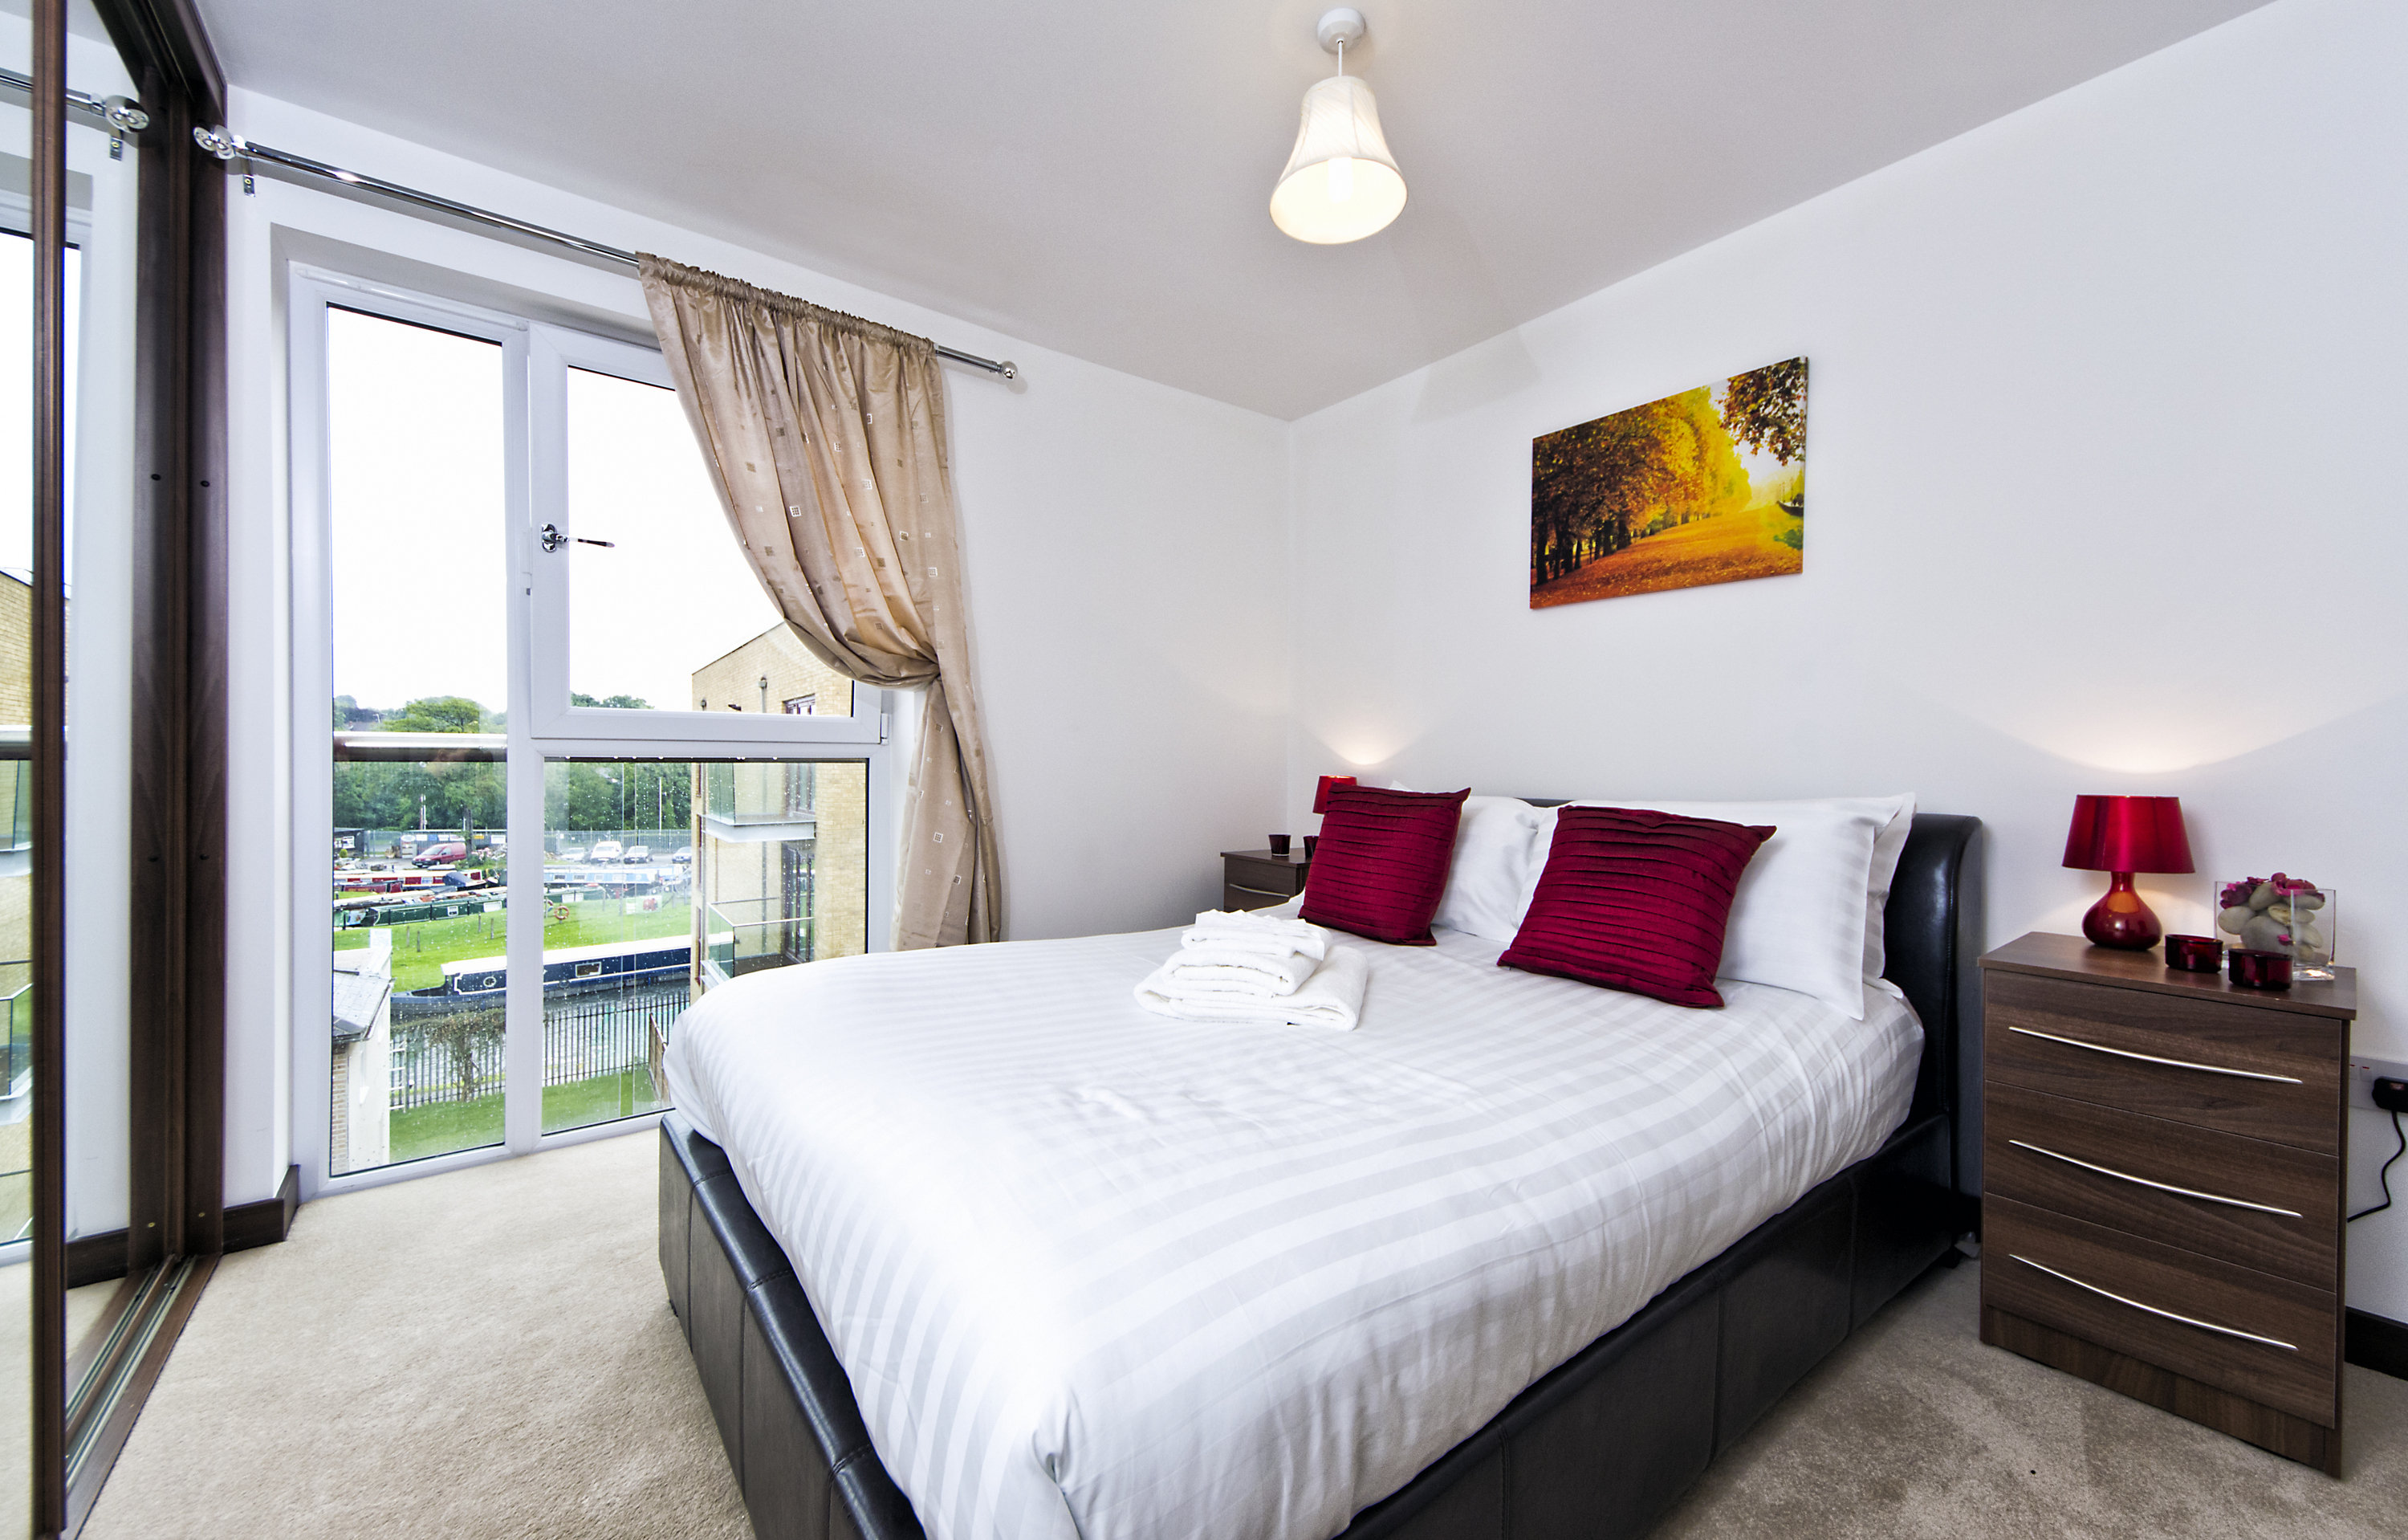 Modern-Uxbridge-Apartments---Kings-Island-Apartments---Book-Today-With-Urban-Stay-For-The-Best-Available-Rates---Free-Wi-Fi---Full-Sky-TV-Package